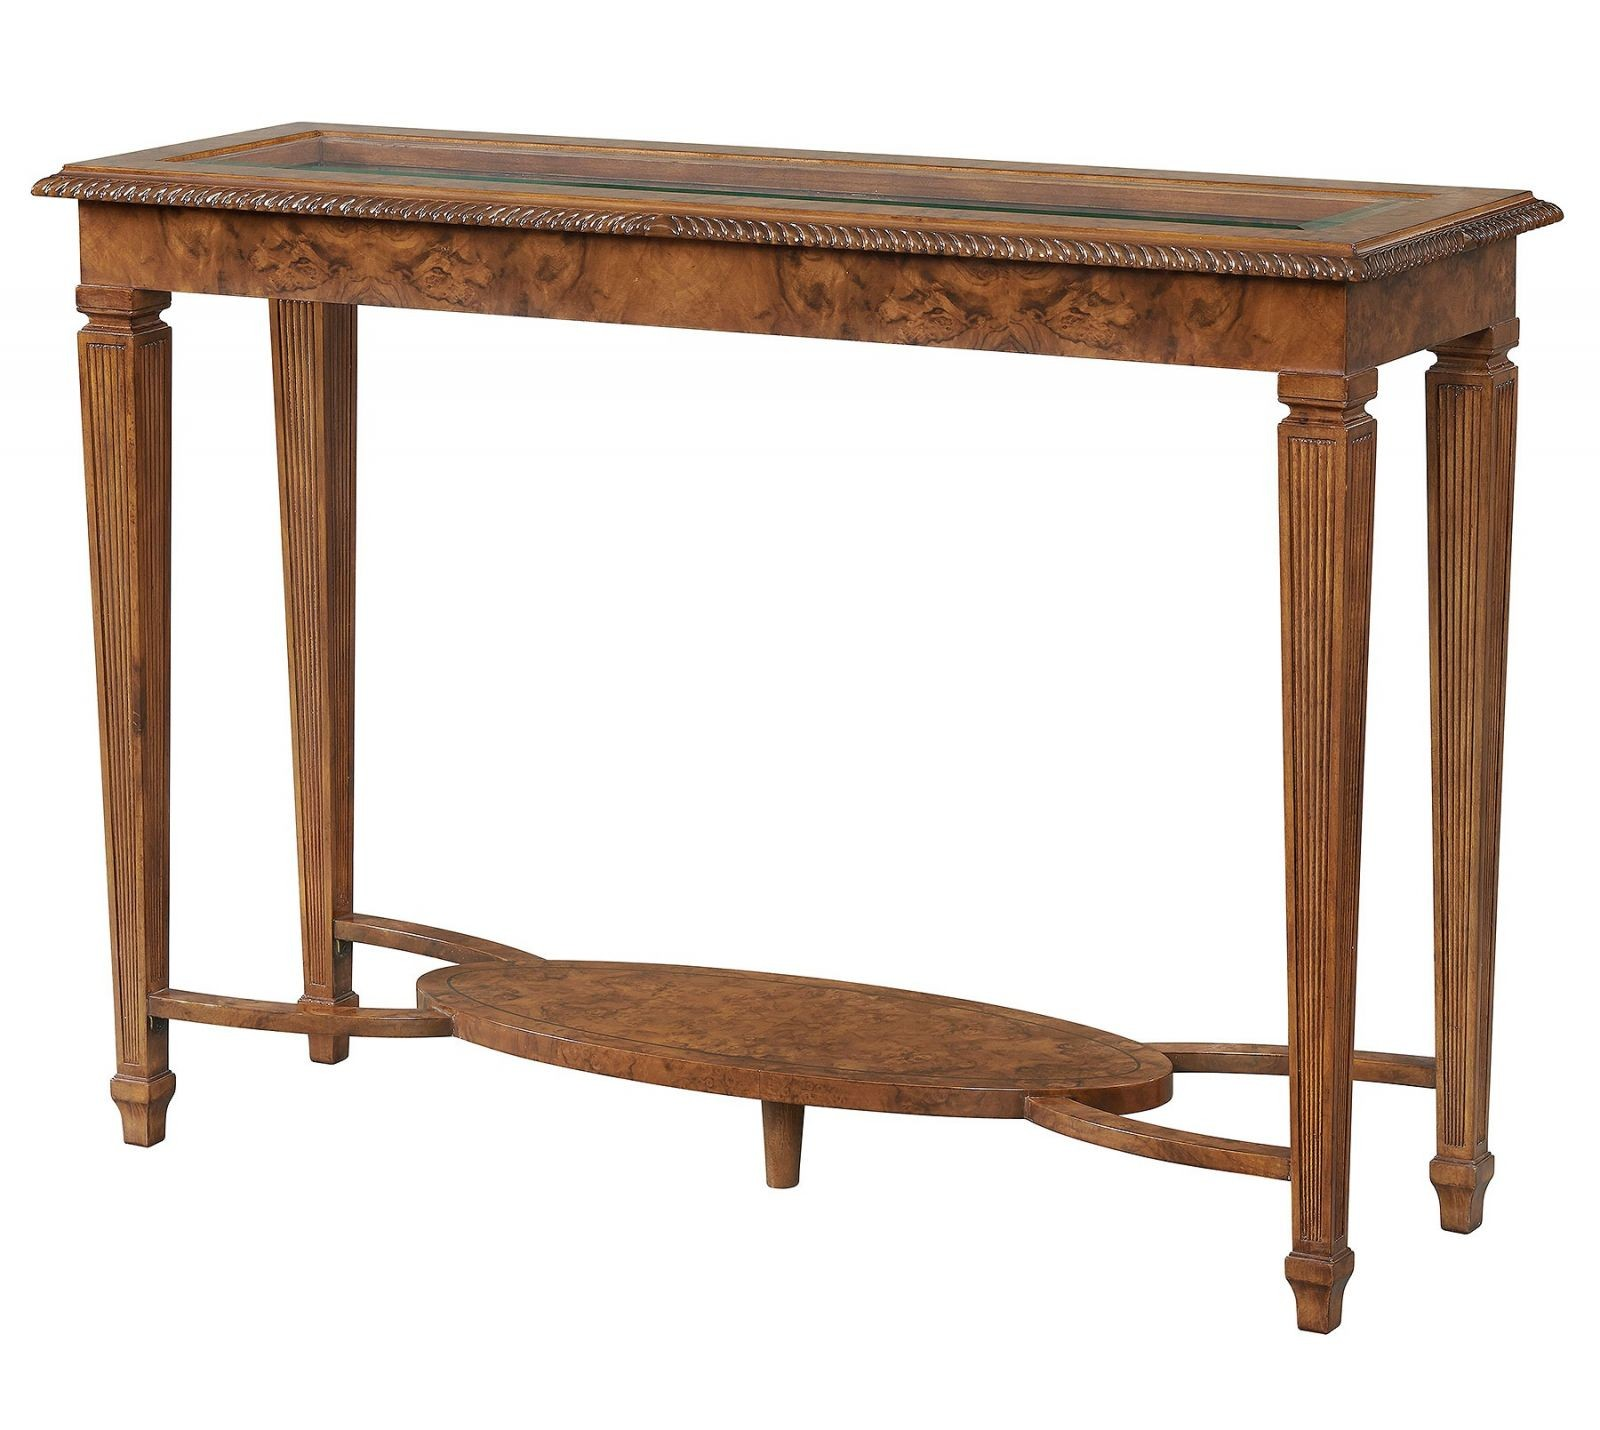 Burr walnut console table with glass top